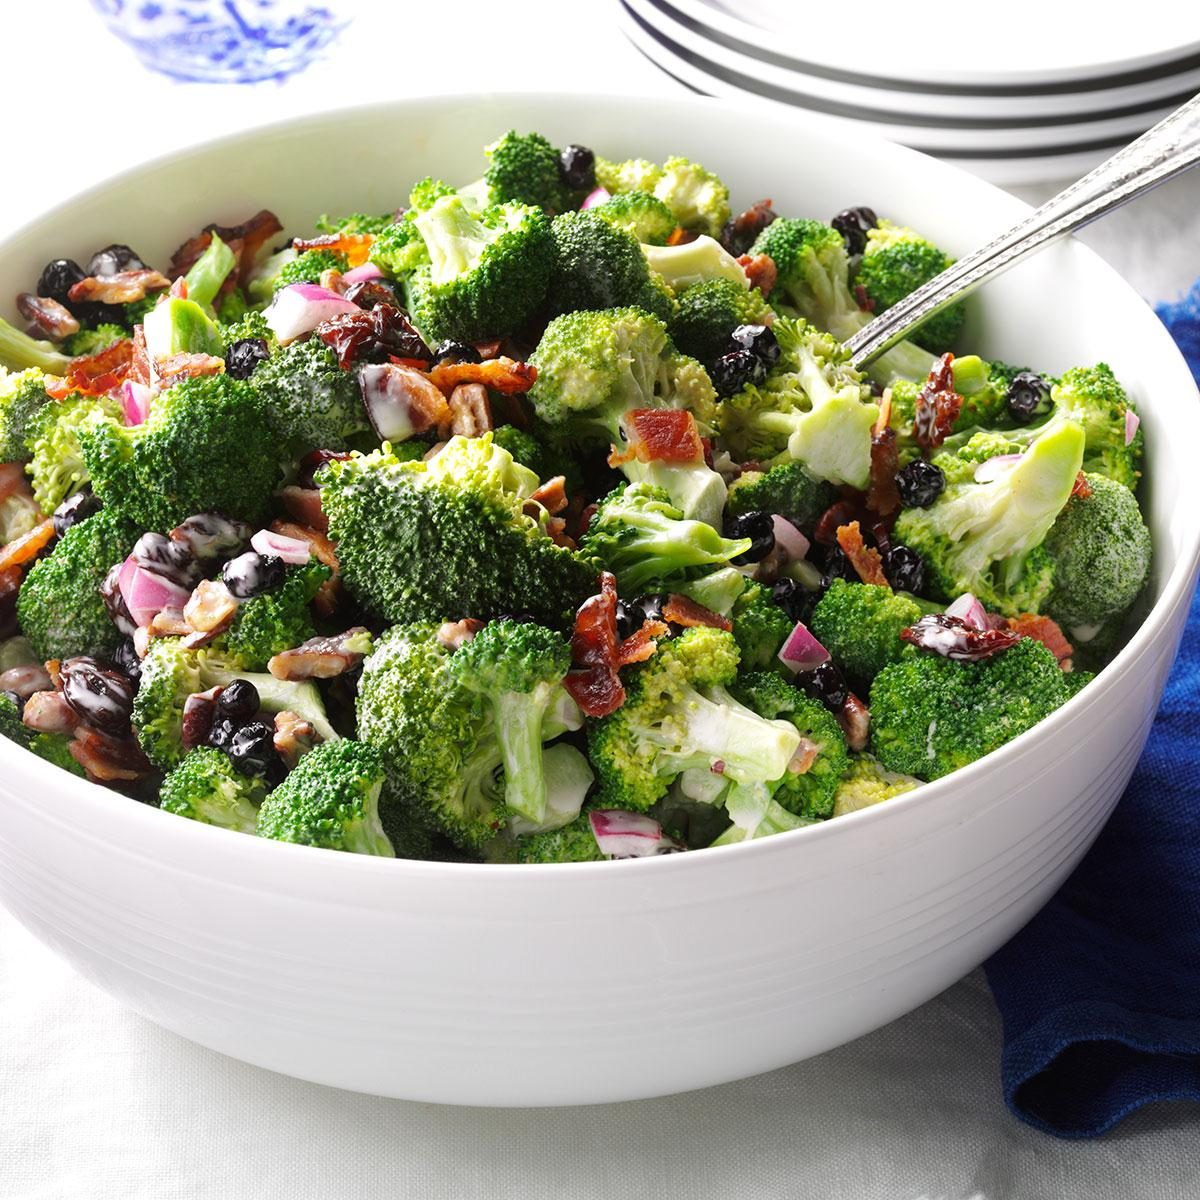 Bacon And Broccoli Salad Recipe How To Make It Taste Of Home